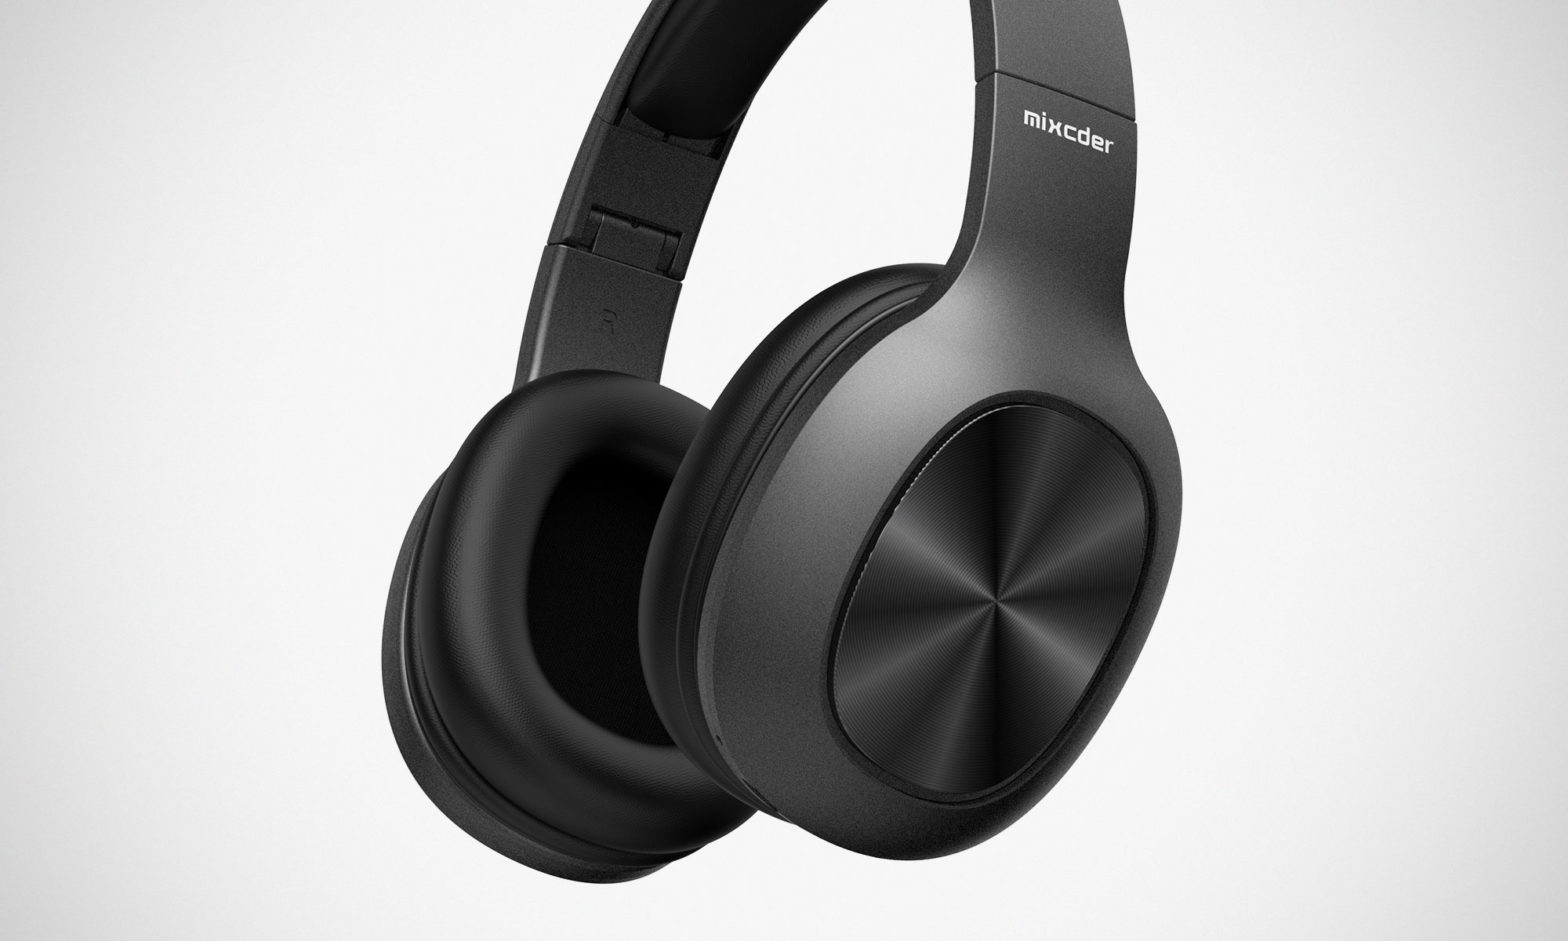 Mixcder HD901 Bluetooth Headphones